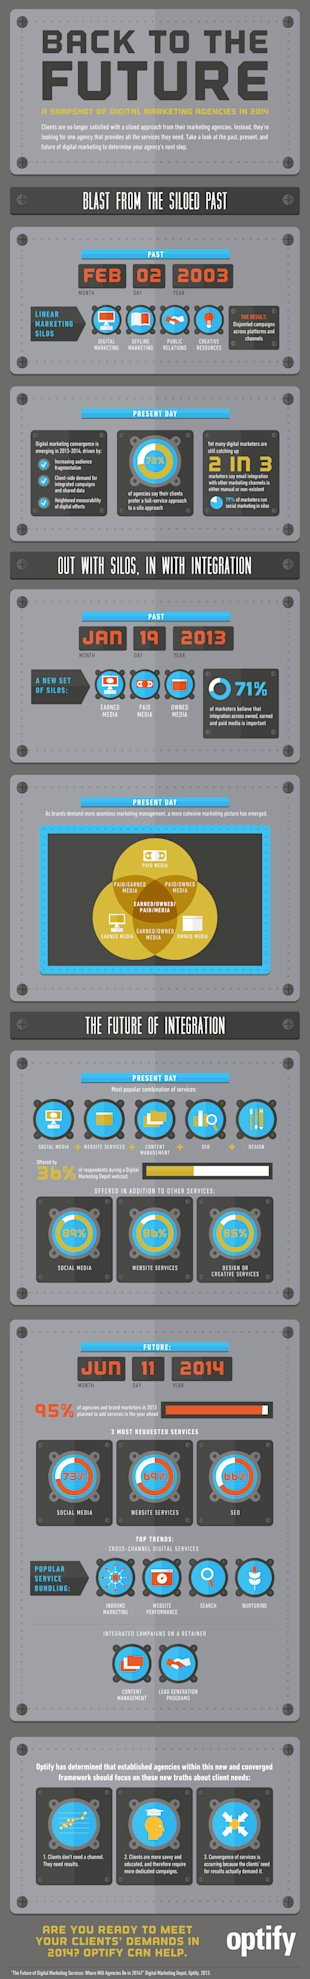 Back to the Future: A Snapshot of Digital Marketing Agencies in 2014 [Infographic] image backtothefuturekeanan.edits6 .19.1315